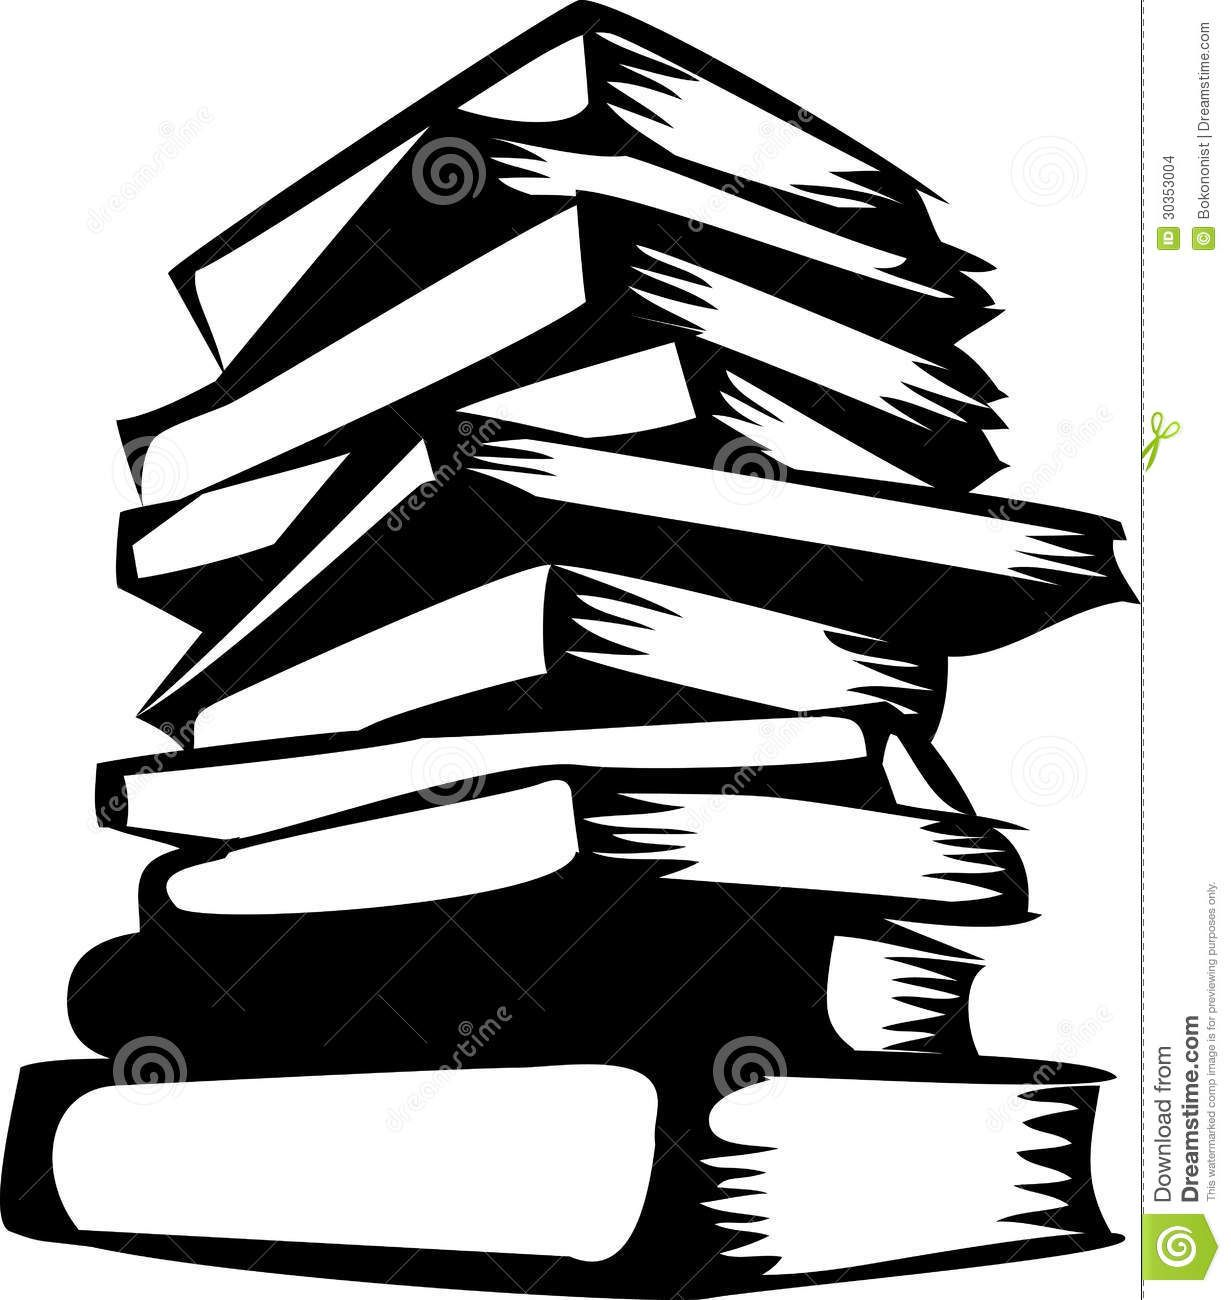 small resolution of stacked books silhouette use these free images for your websites art projects reports and